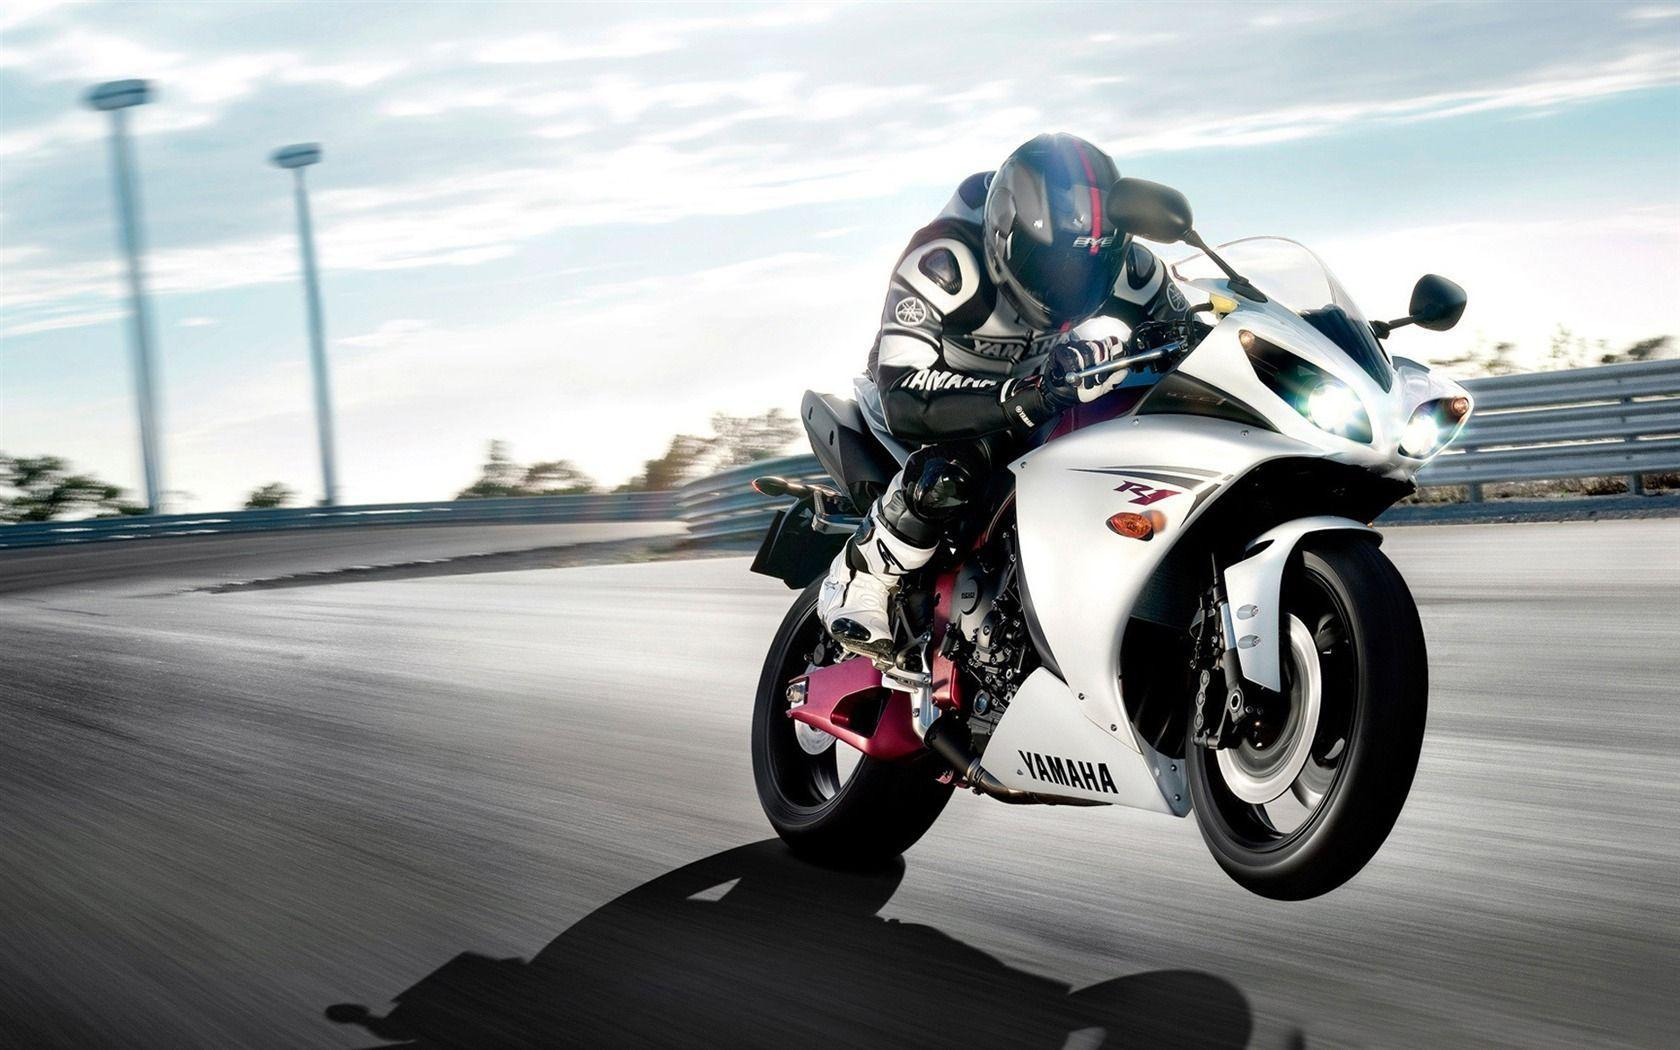 Cool Motorcycle Wallpapers   Top Cool Motorcycle Backgrounds 1680x1050